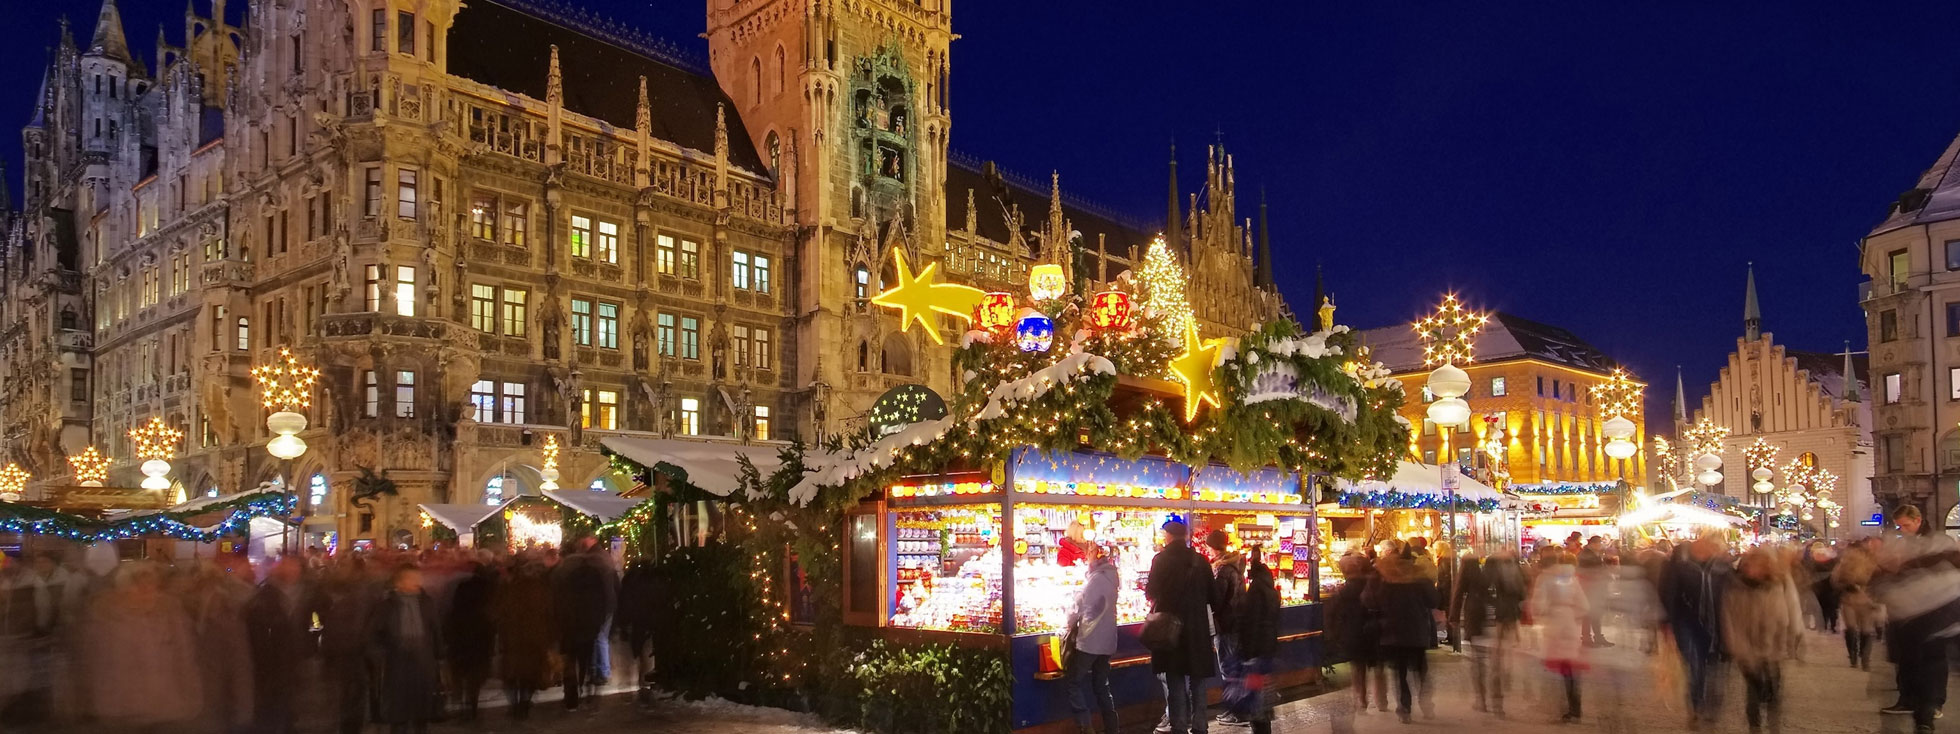 Getting To The Munich Christmas Market Official Website